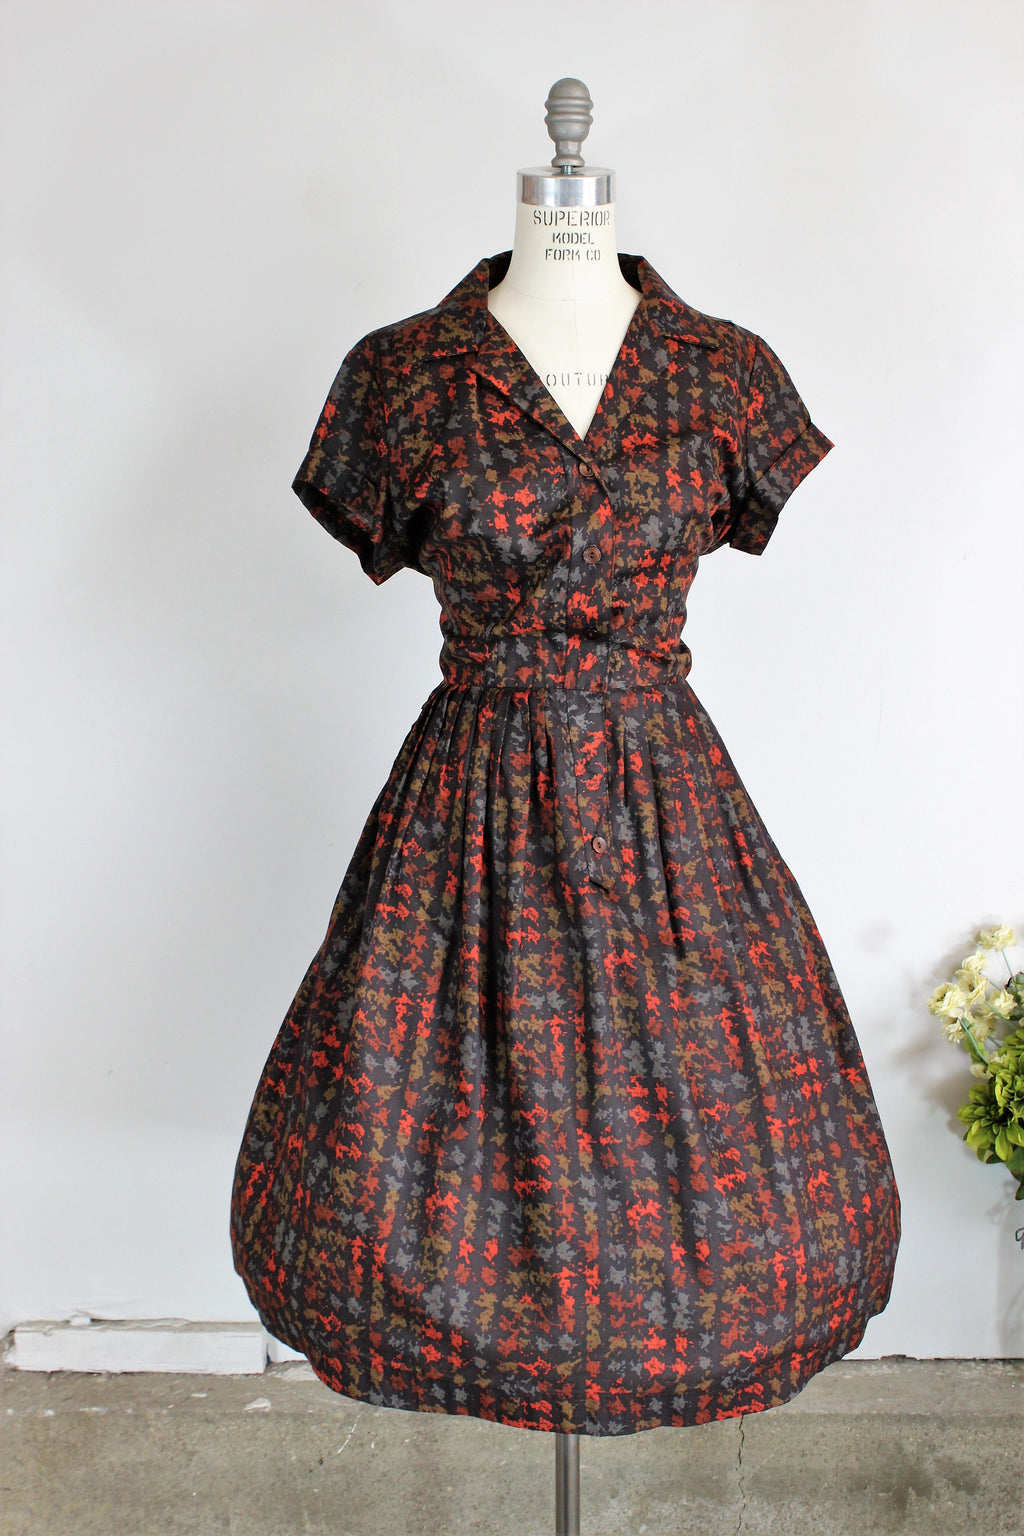 Vintage 1950s Shirtwaist Dress by Fashion First